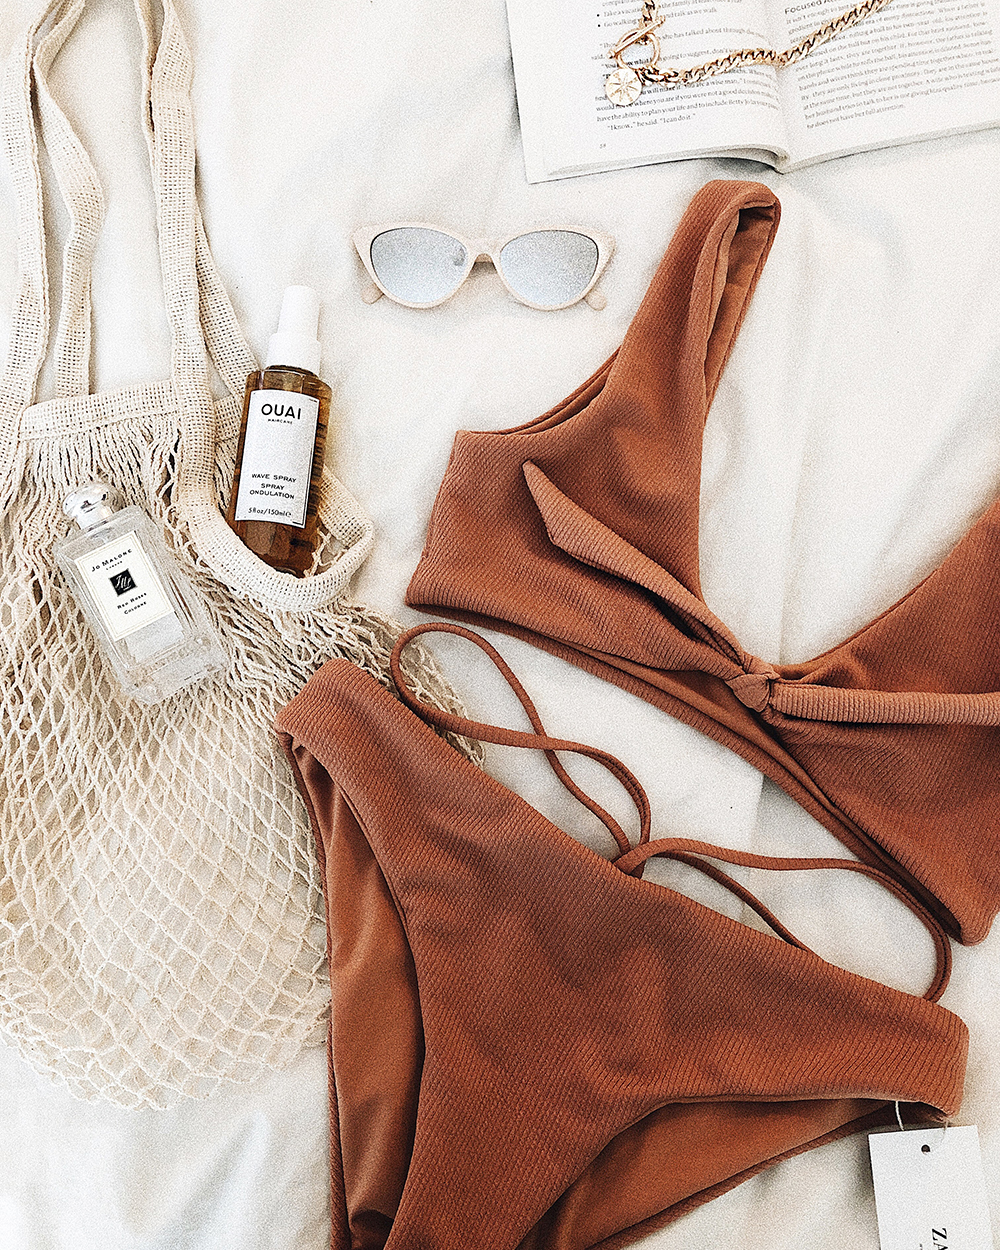 95d818bbd6 Recently for my Hawaii trip I ordered a bunch of bathing suits from Zaful. I  didn t want to spend too much but wanted some cute new styles so I decided  to ...